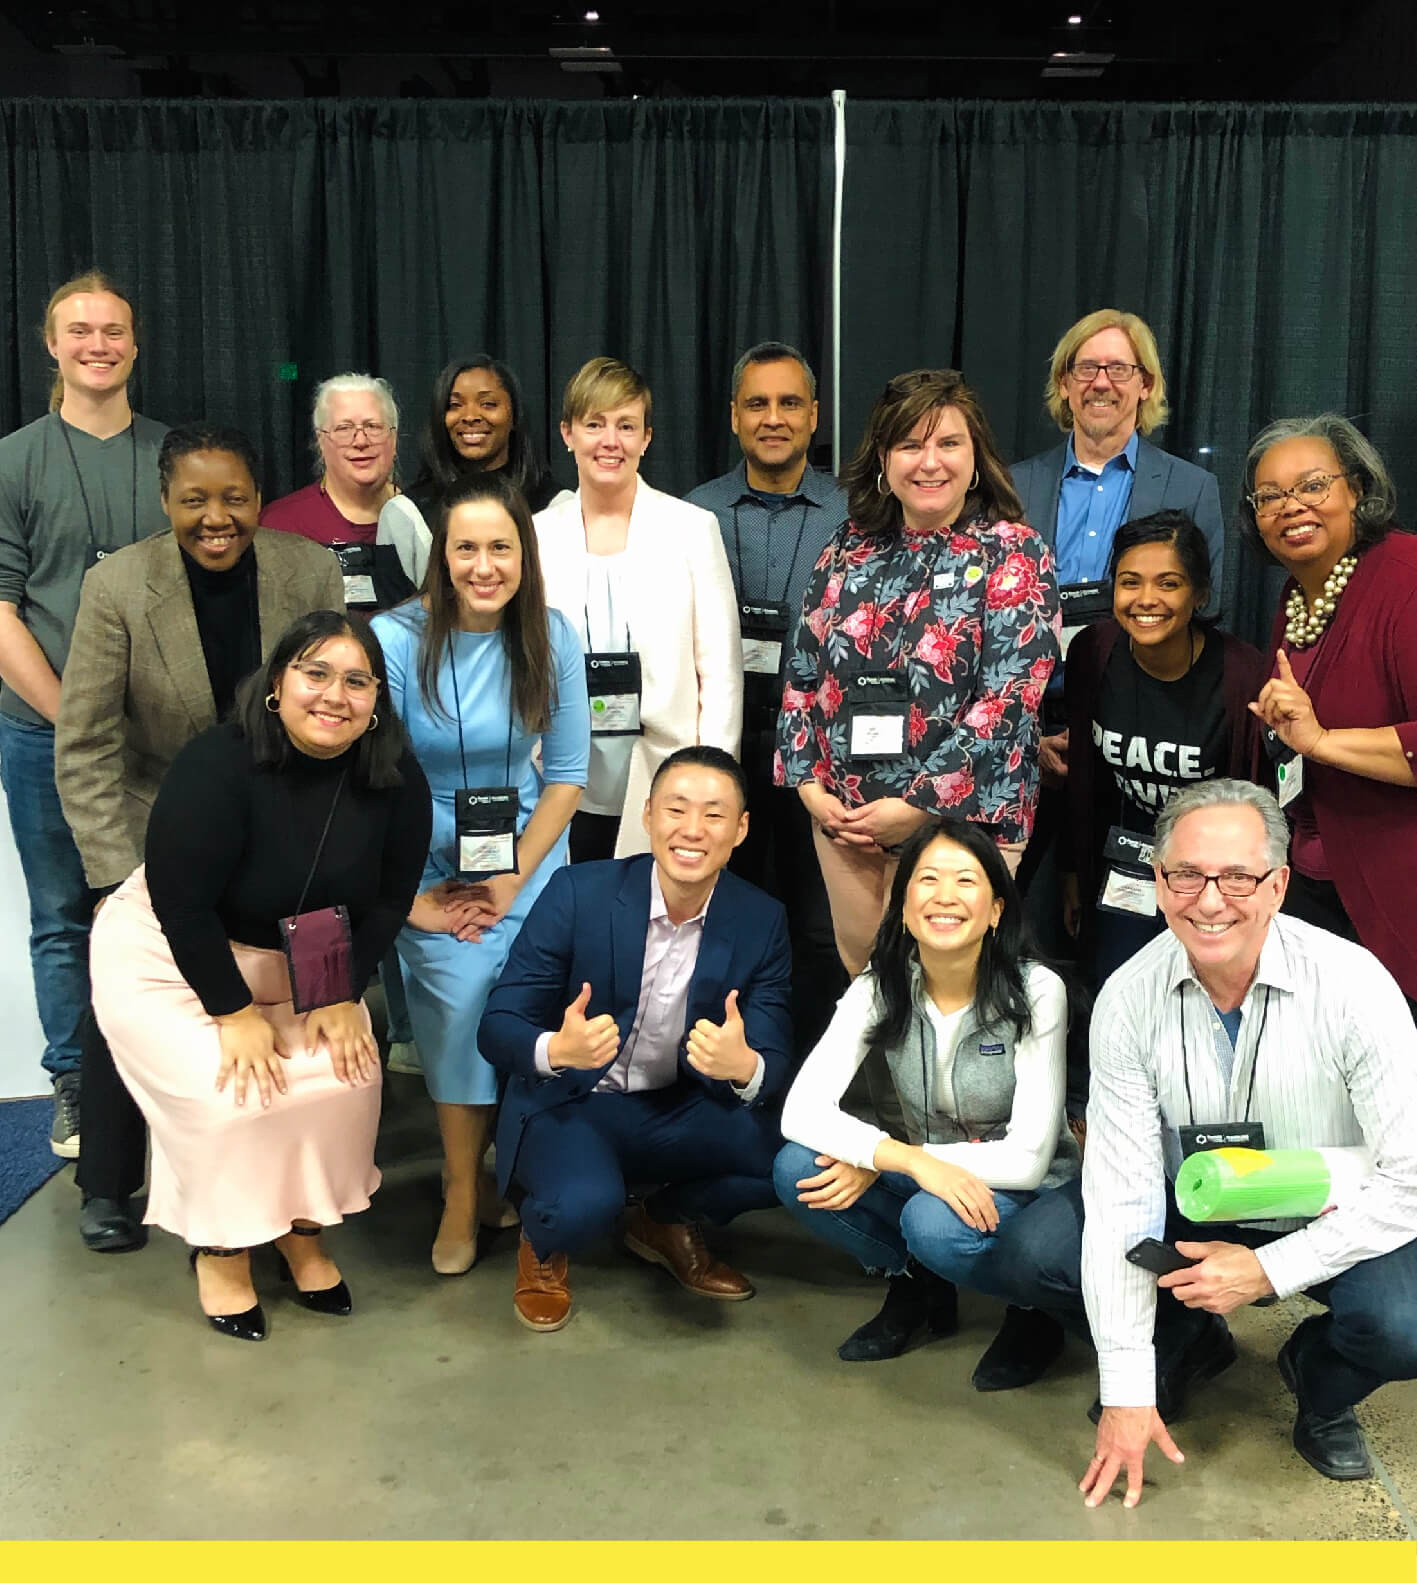 The Onova team led a 3-day invention sprint at the Forum on Workplace Inclusion conference where 1500+ Diversity, Equity, and Inclusion (DEI) leaders gathered to learn, discuss, and innovate.